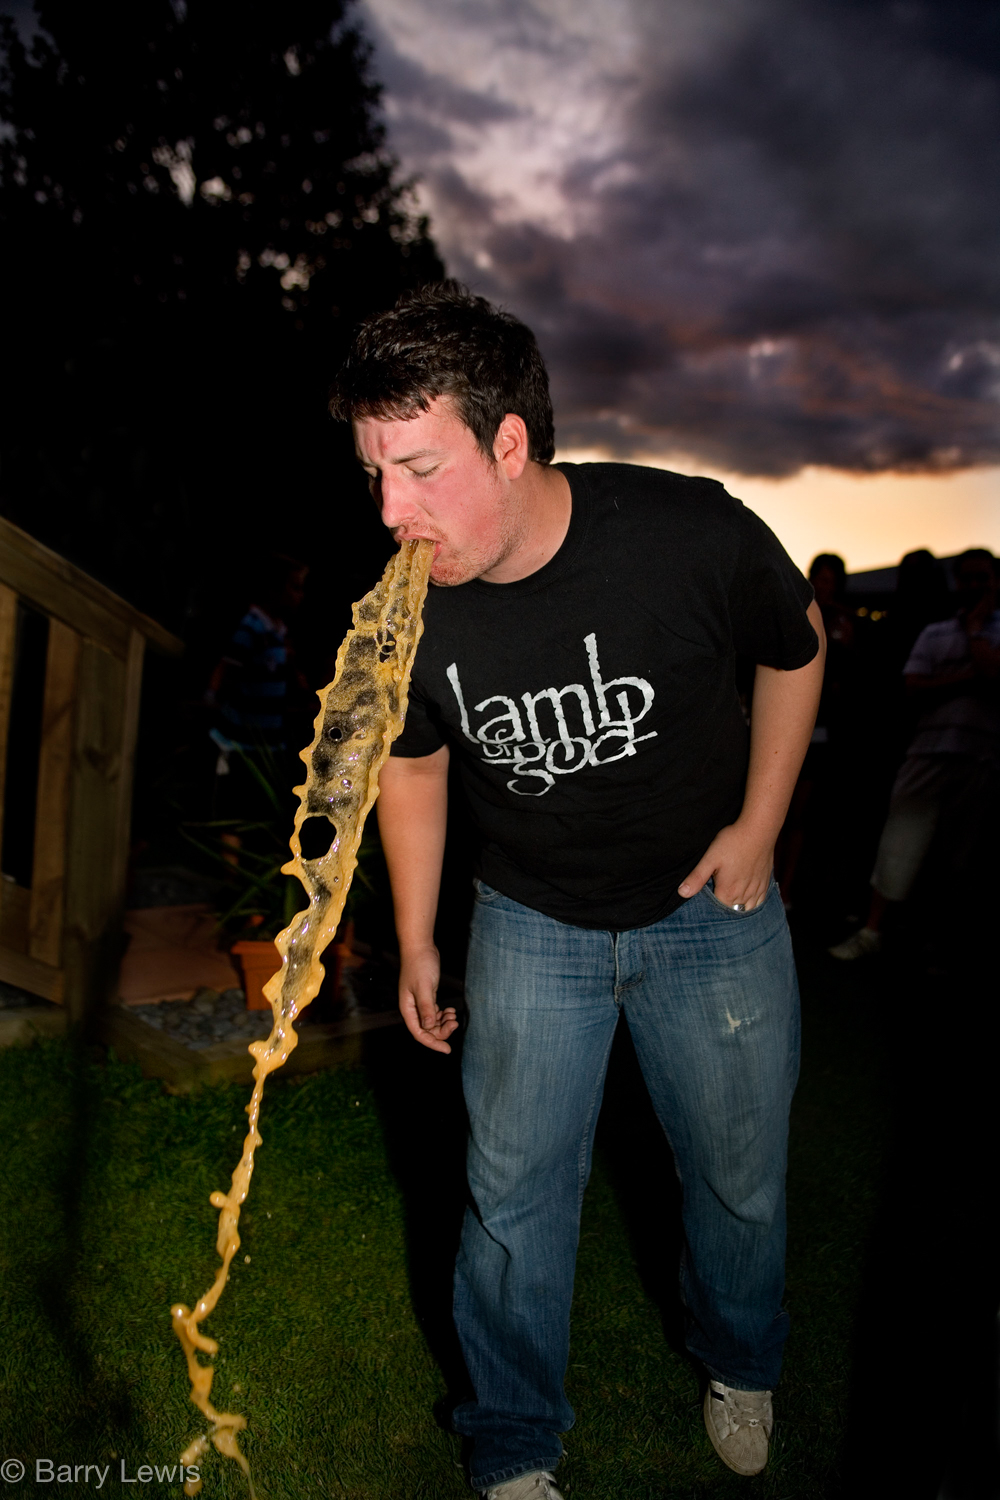 New Zealand - boy vomiting on 21st birthday.